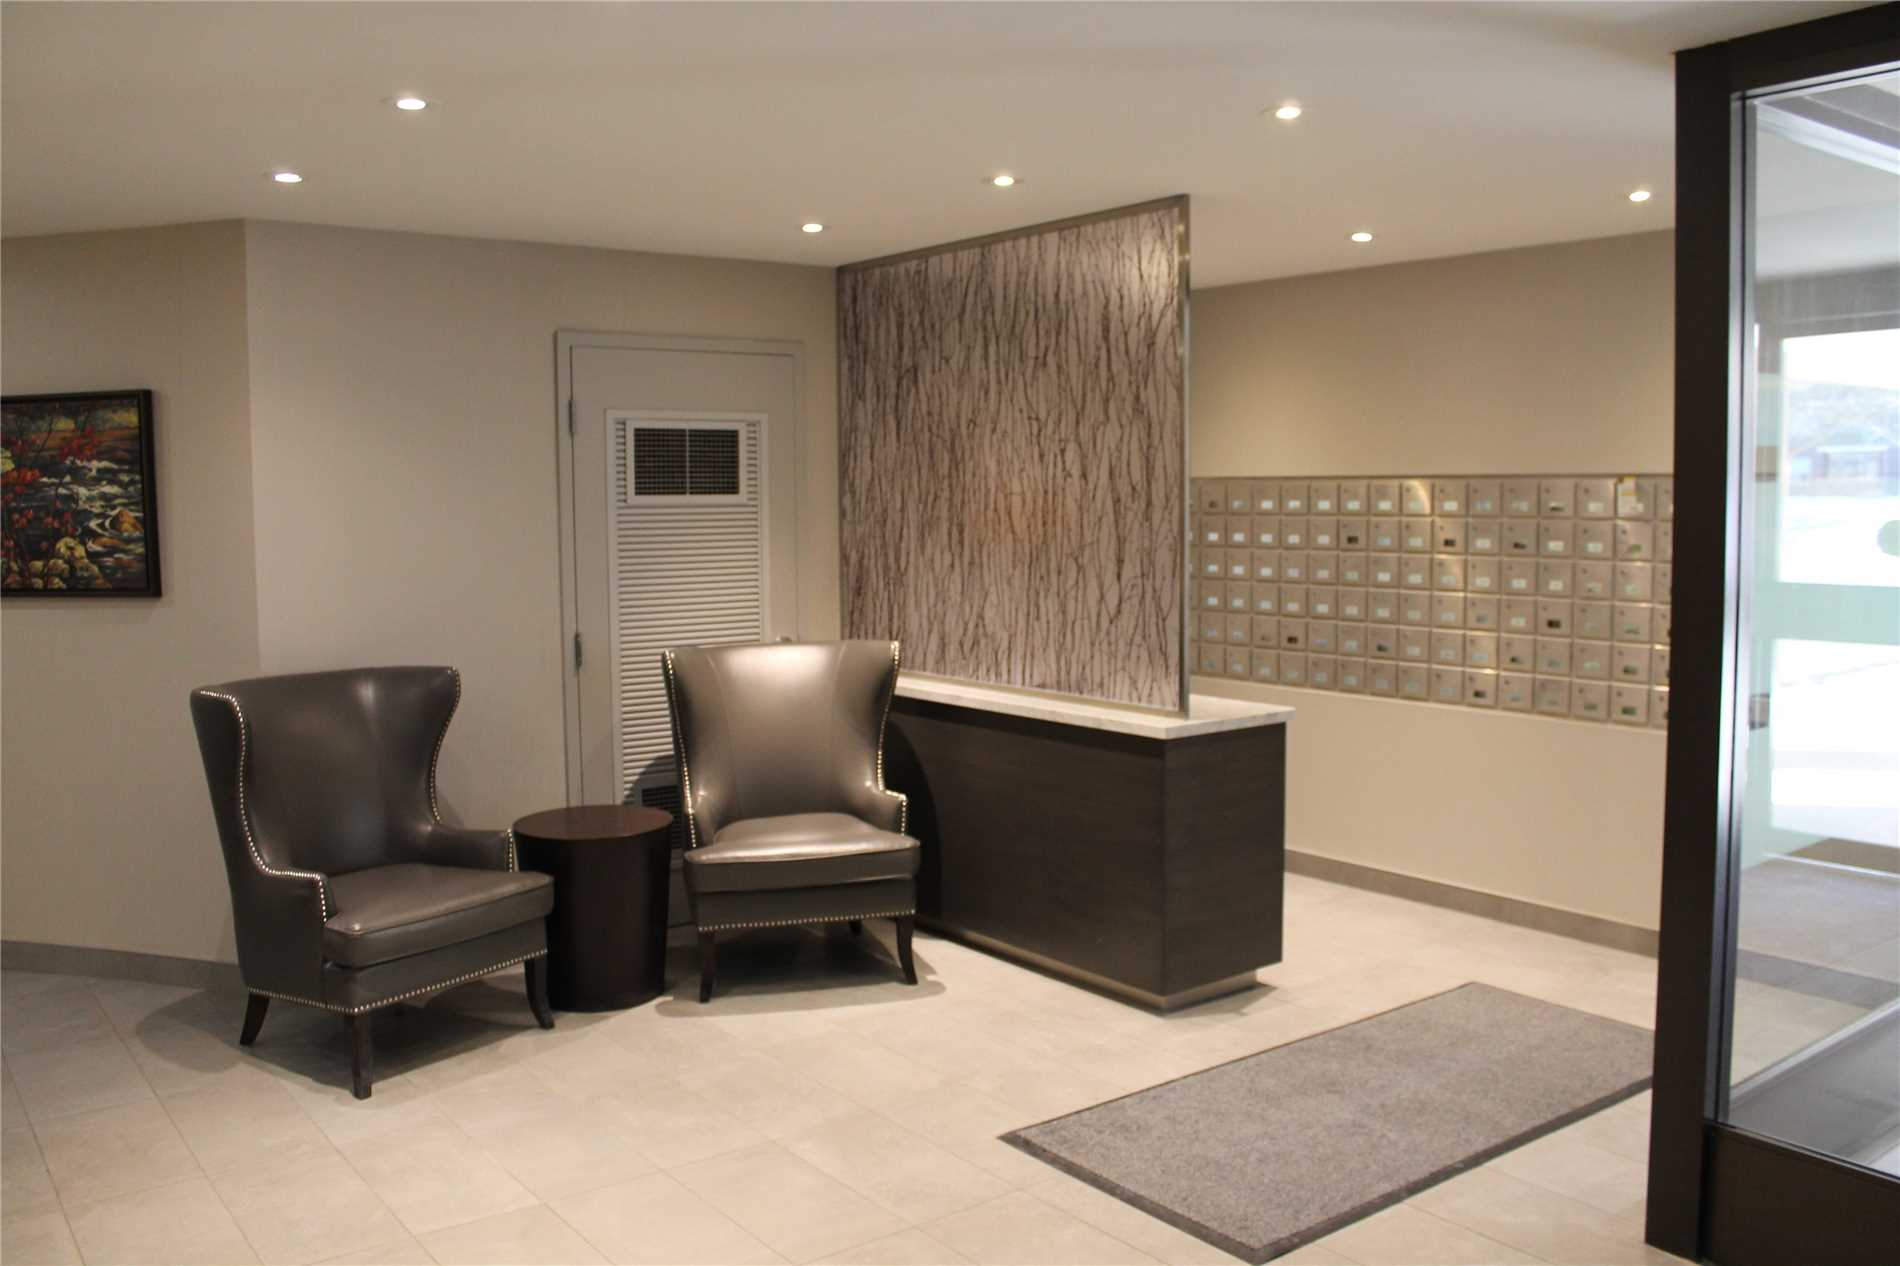 #907 - 965 Inverhouse Dr, Mississauga W4524037